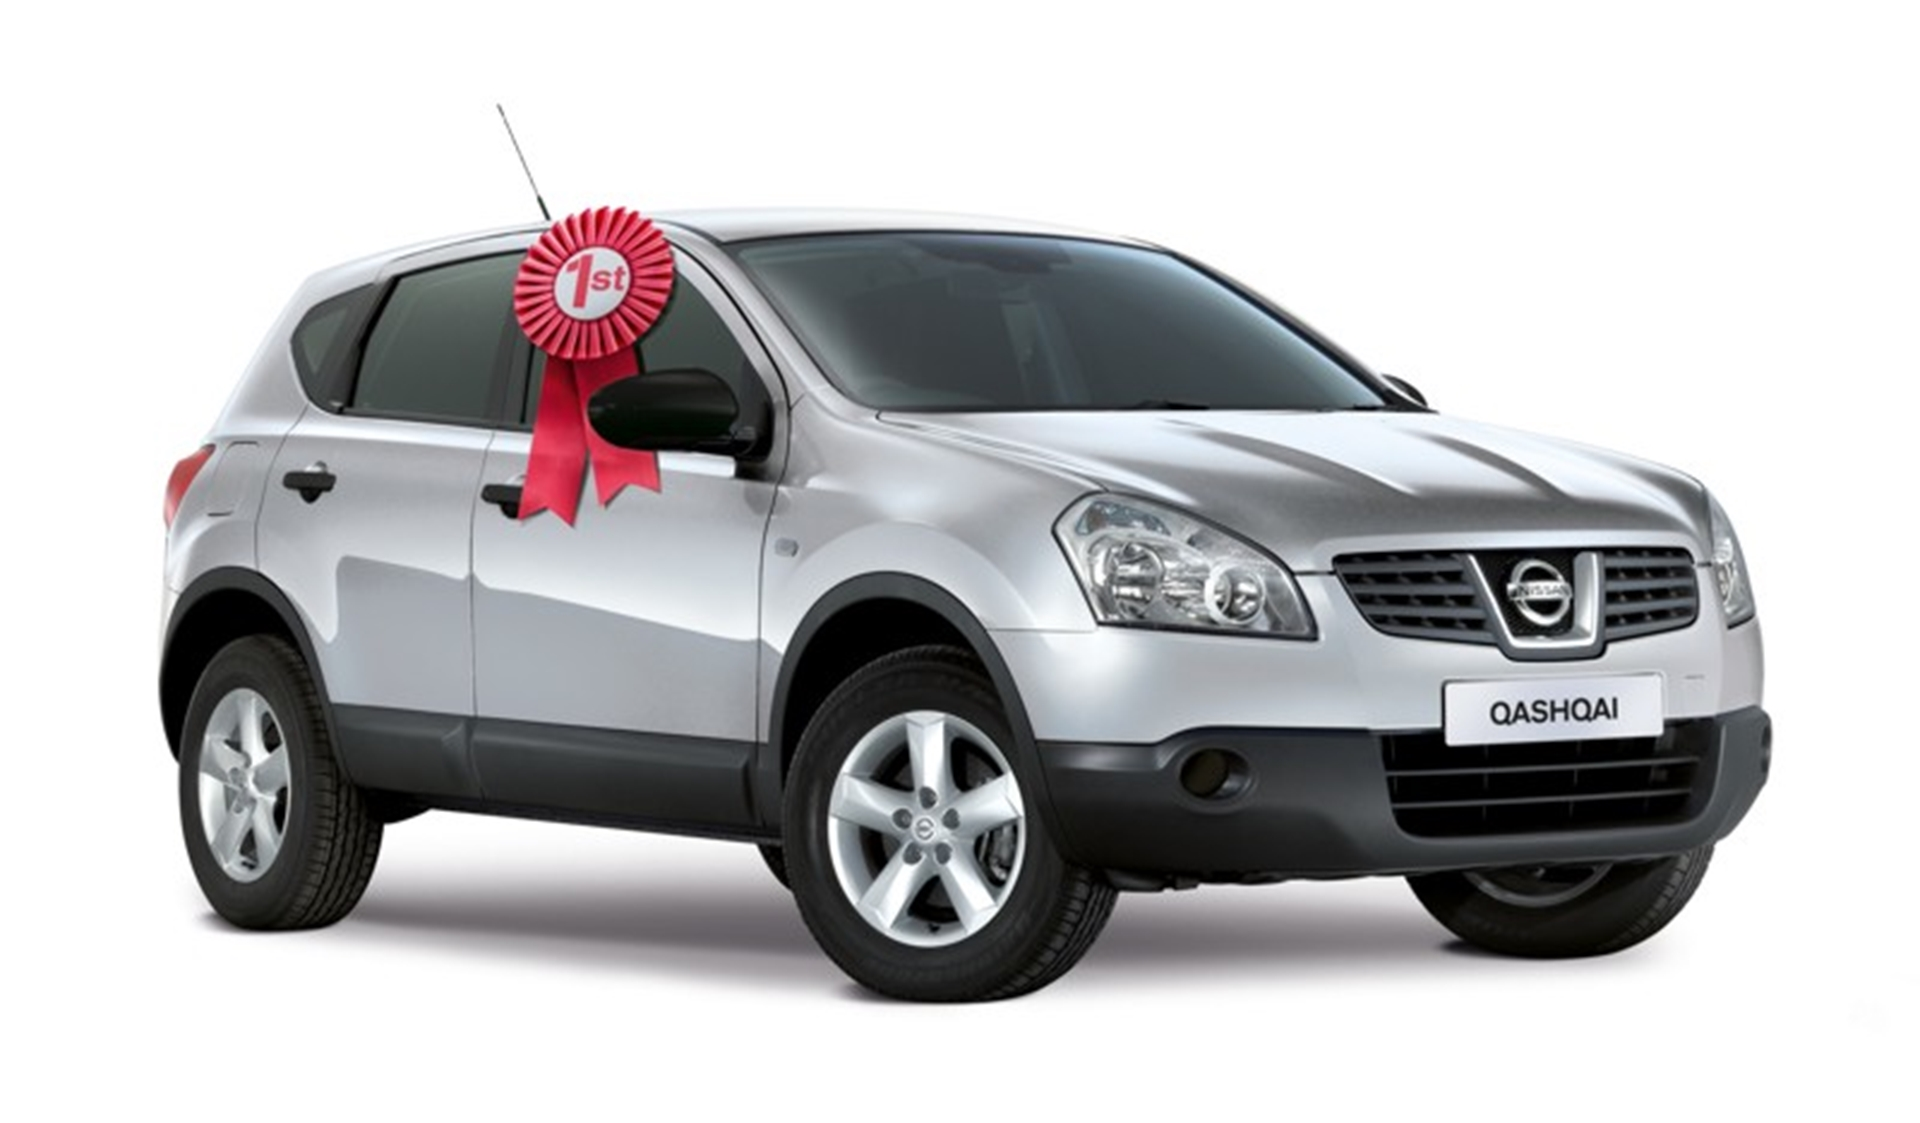 Qashqai named CAP's Used Car of the Year